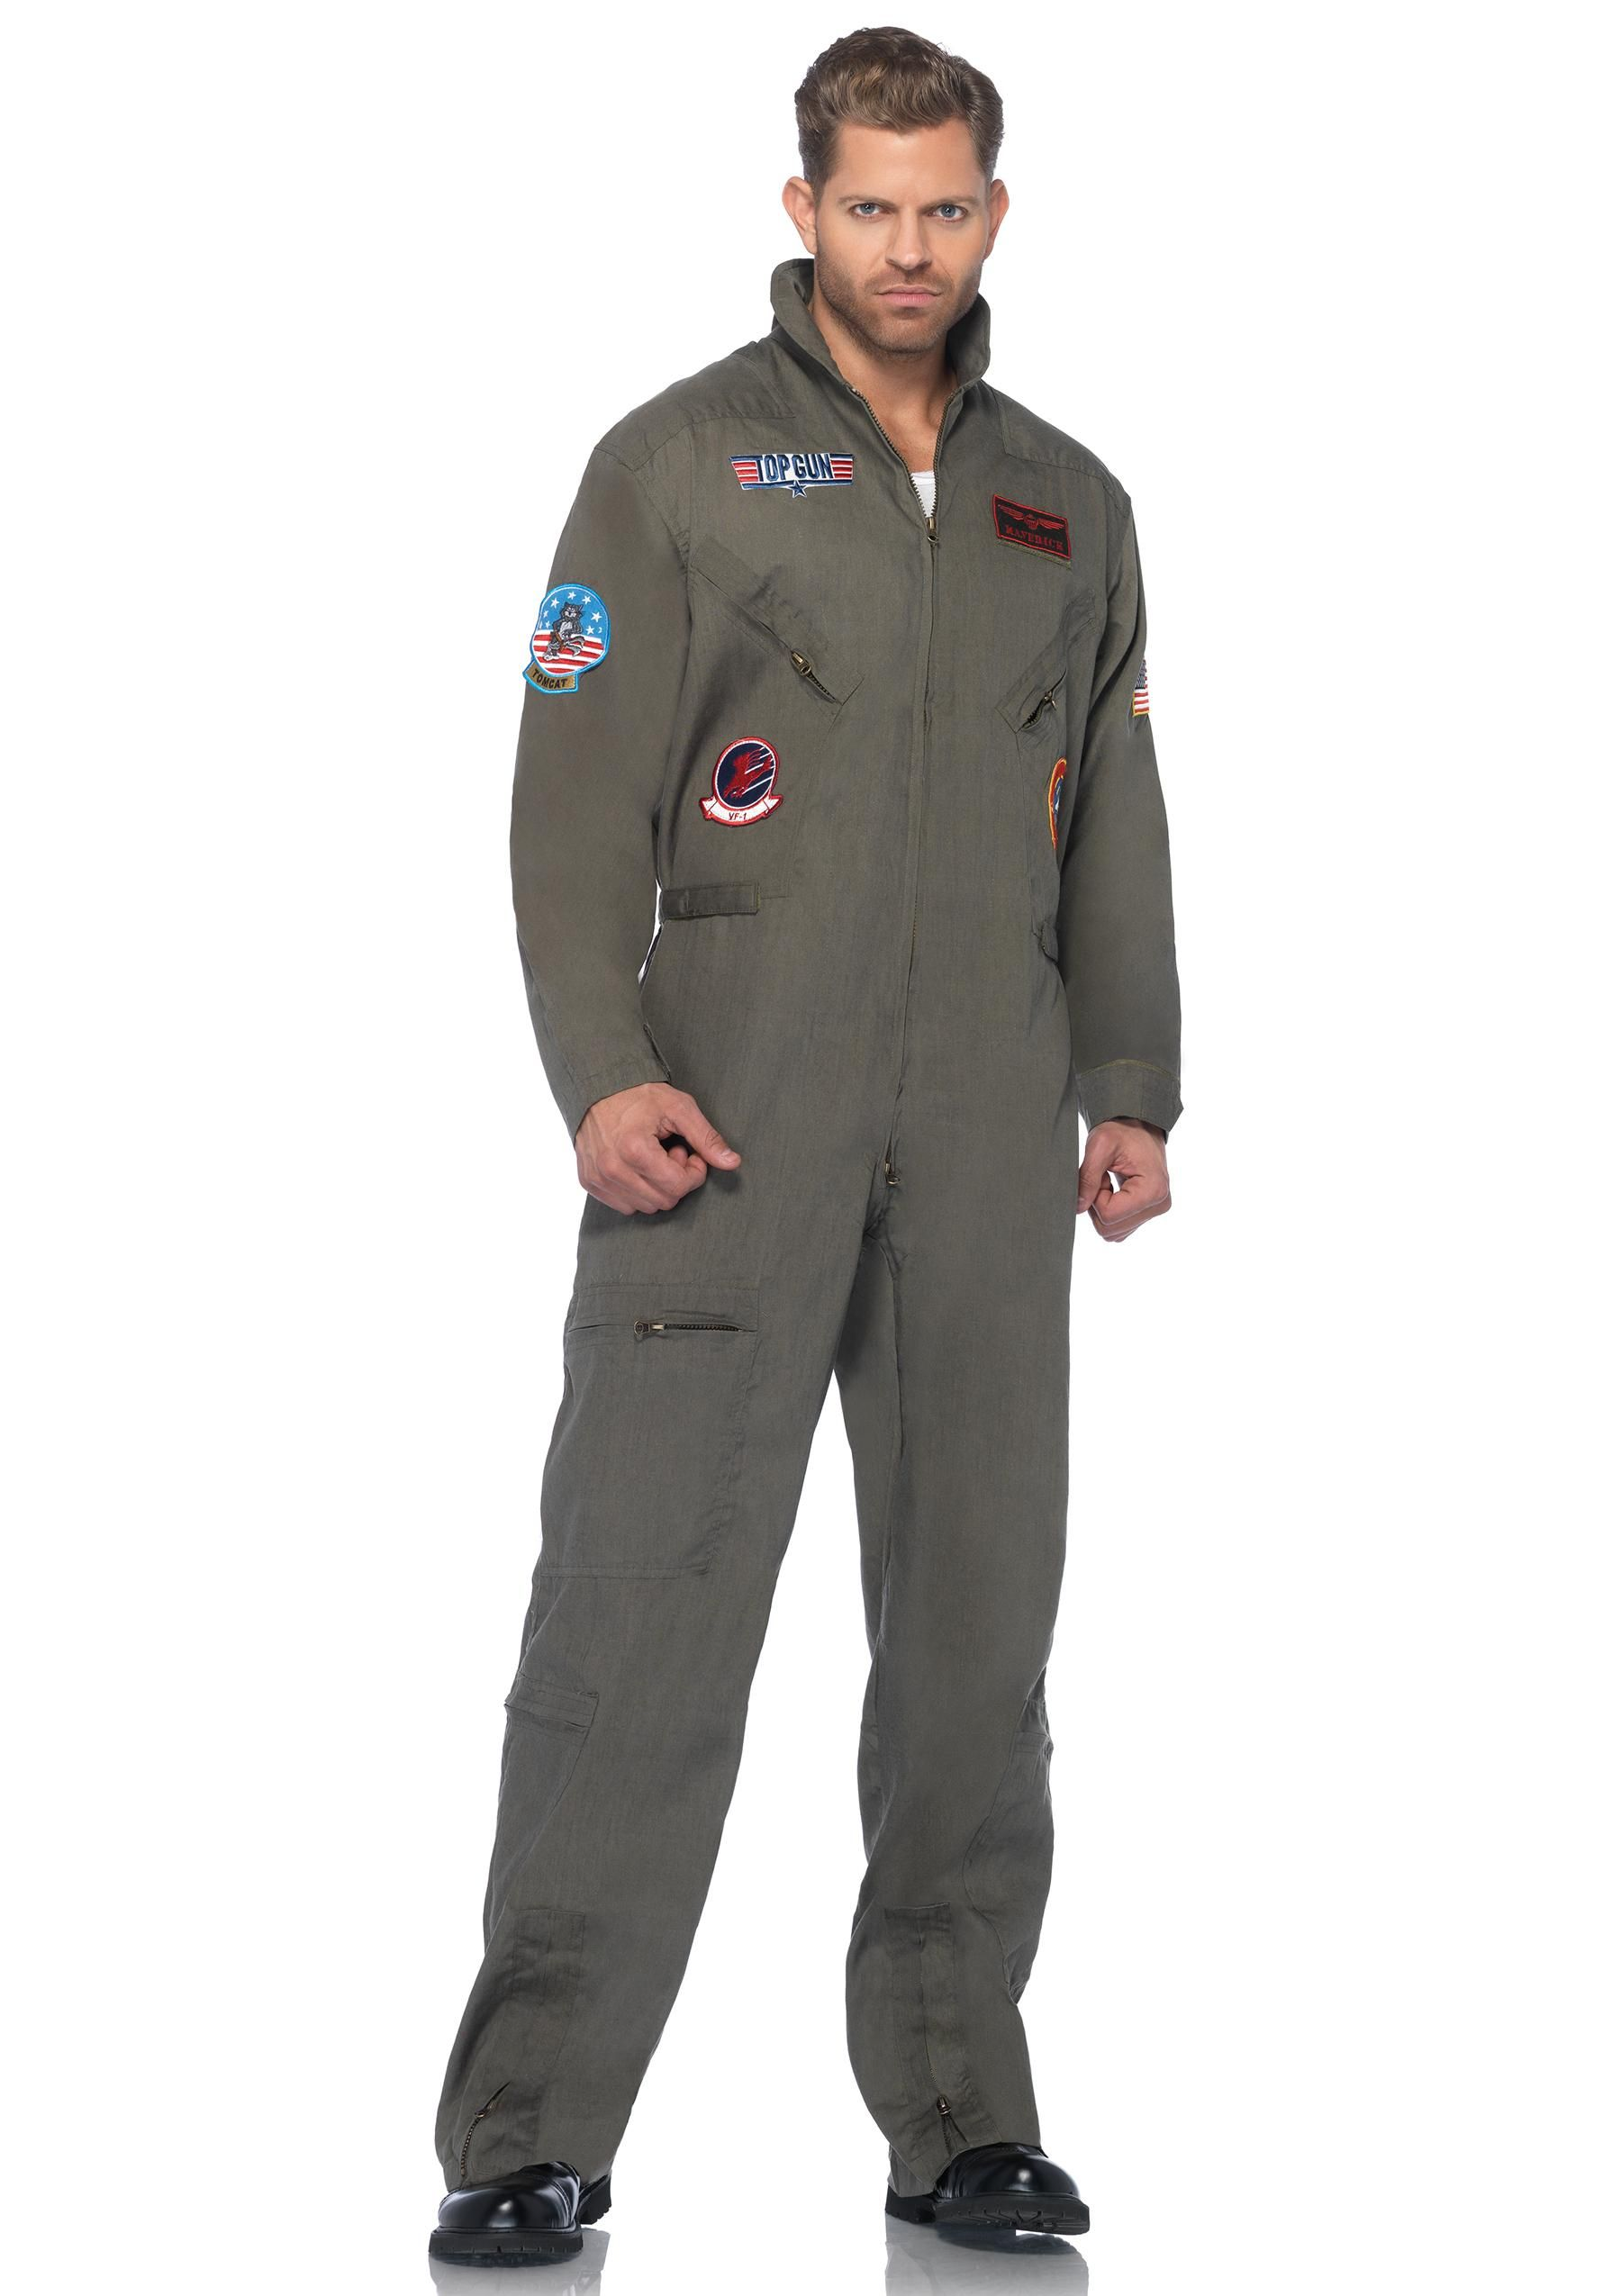 Amazon.com  Top Gun Men s Flight Suit Adult Costume  Pilot Costume  Clothing 360a41fb960